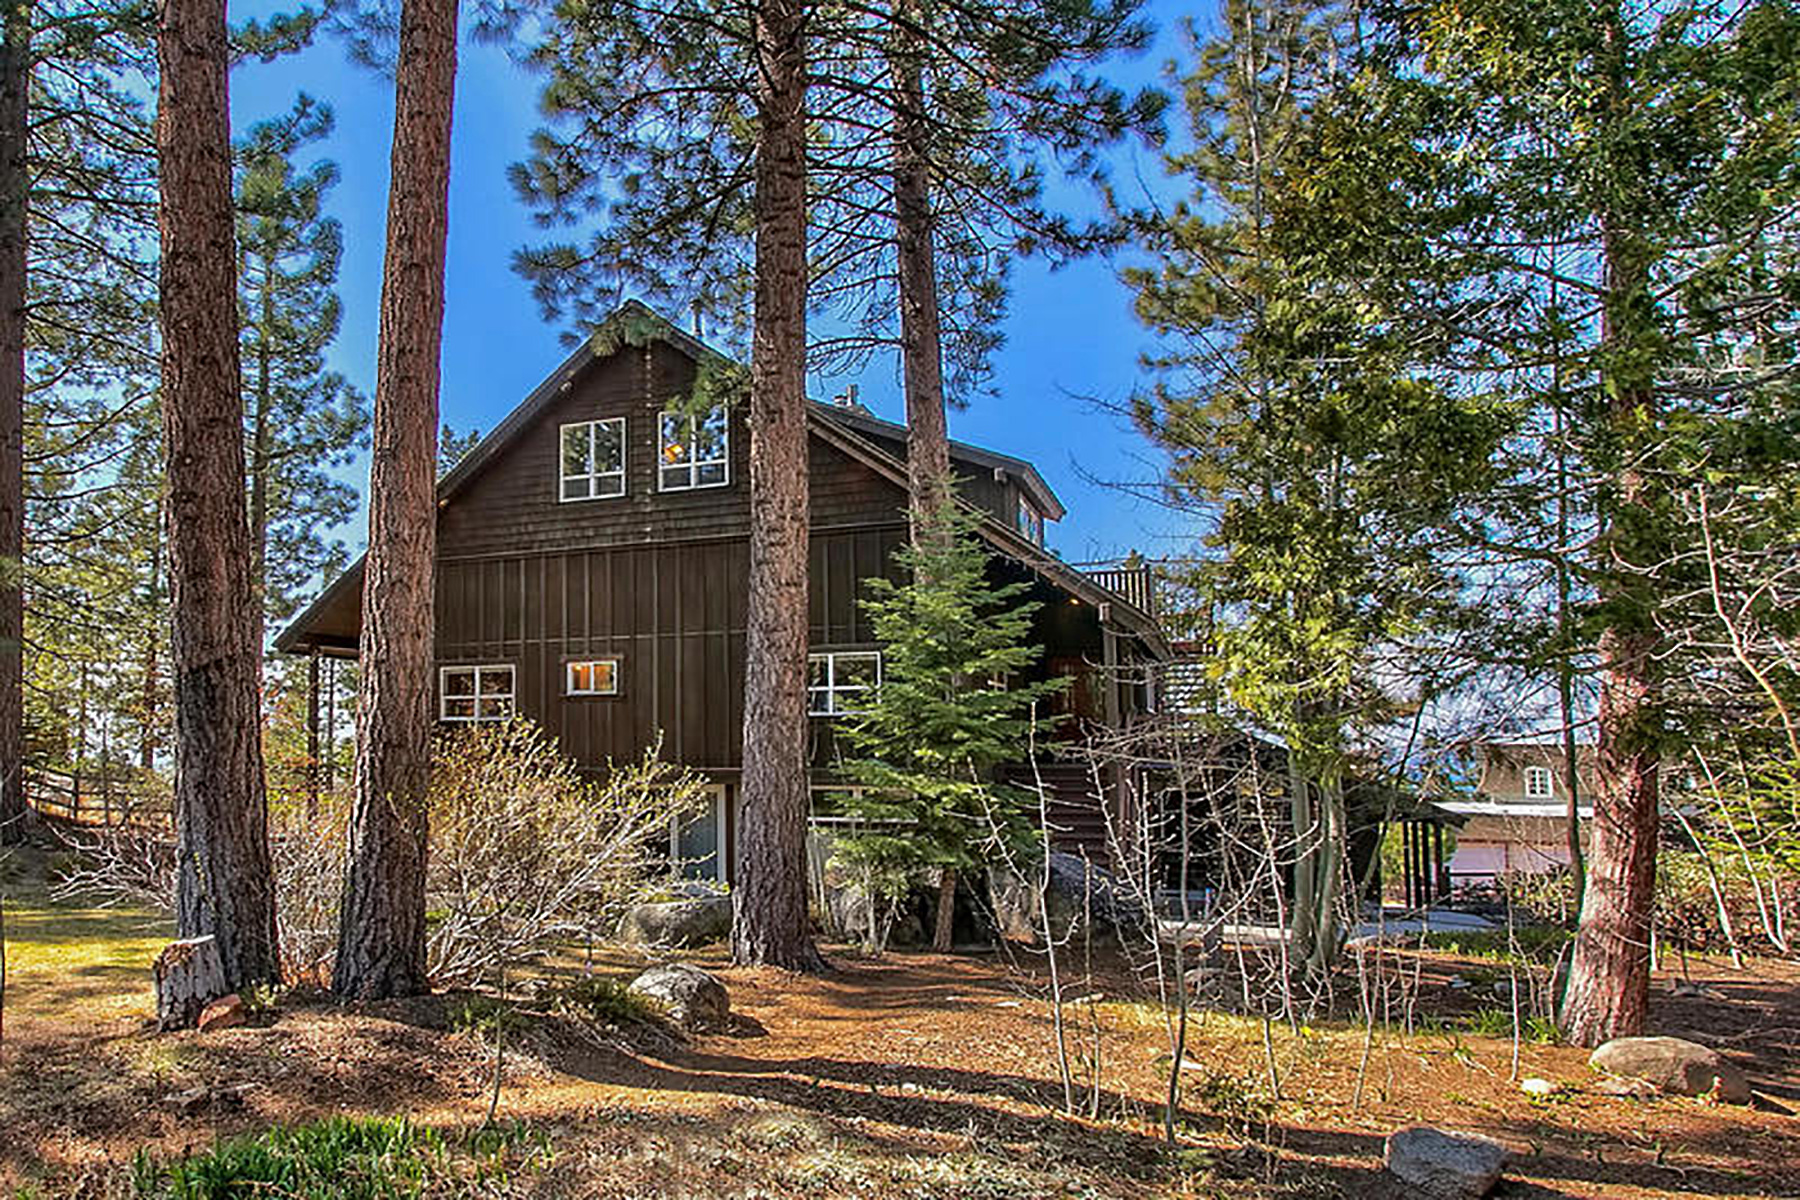 Additional photo for property listing at 3802 Lucinda Court, South Lake Tahoe, CA 96150 3802 Lucinda Court South Lake Tahoe, California 96150 United States